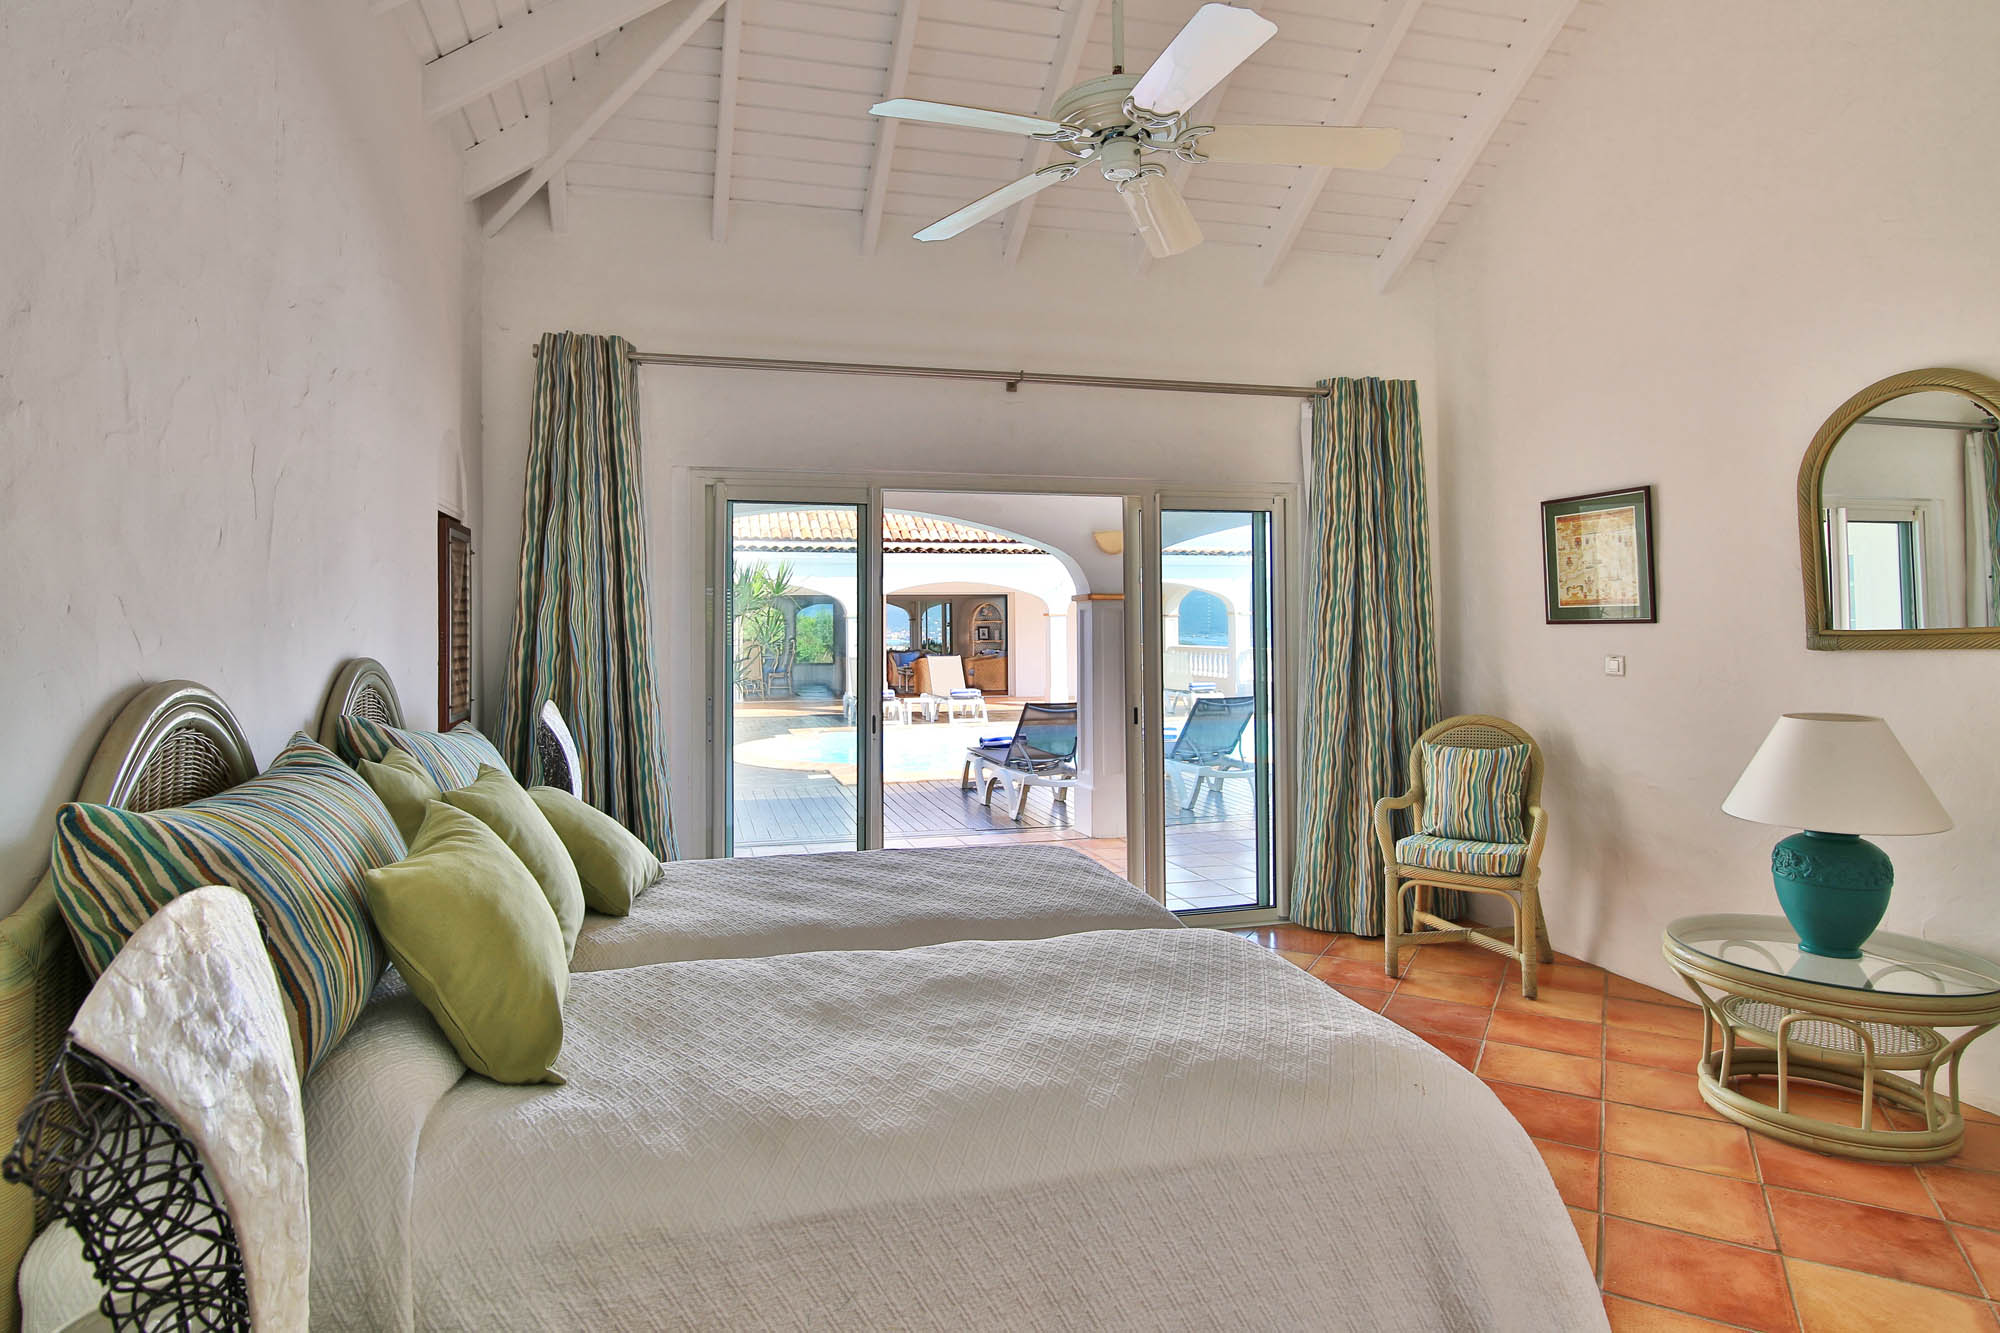 Three of the bedrooms in the main house of Escapade villa rental open directly onto the pool.